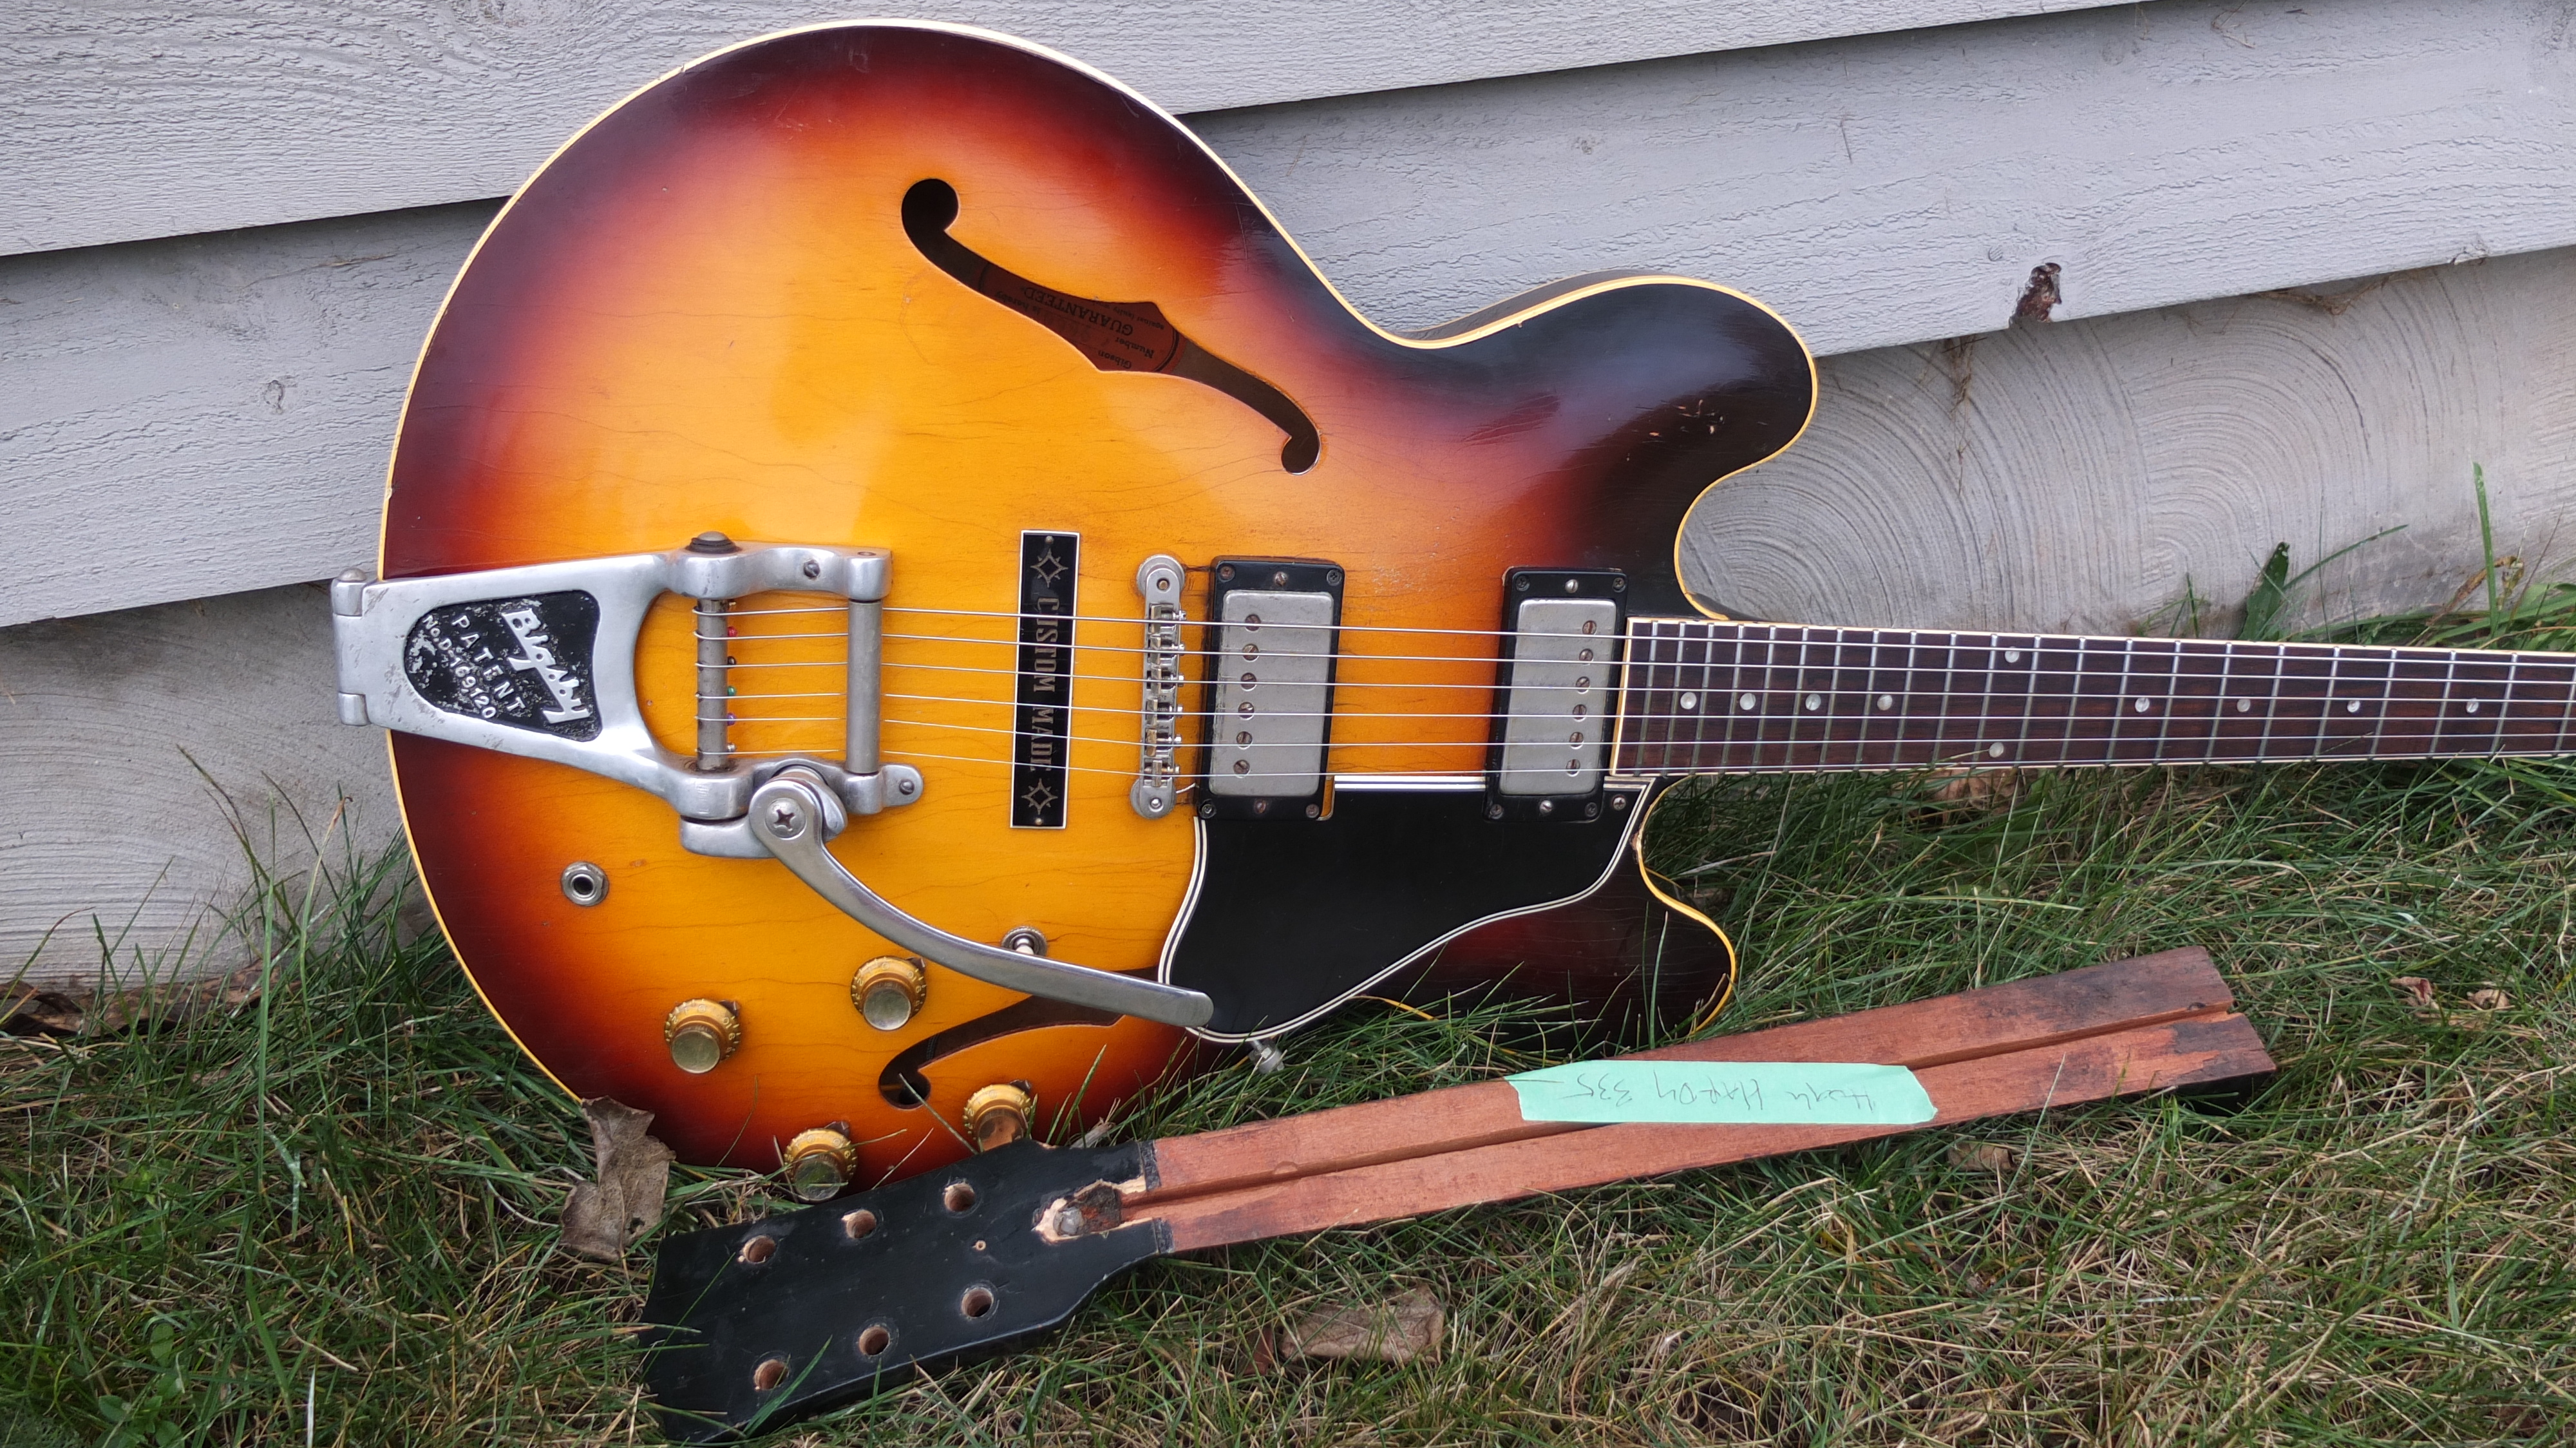 Es 335 Wiring Diagram besides EP 4144 000 Wiring Kit For Gibson Jimmy Page Les Paul p 4447 also 23062 Mod Garage A Flexible Dual Humbucker Wiring Scheme also Irongear pickups 027 also Gibson Es 335 Wiring Diagram. on gibson es 335 wiring harness